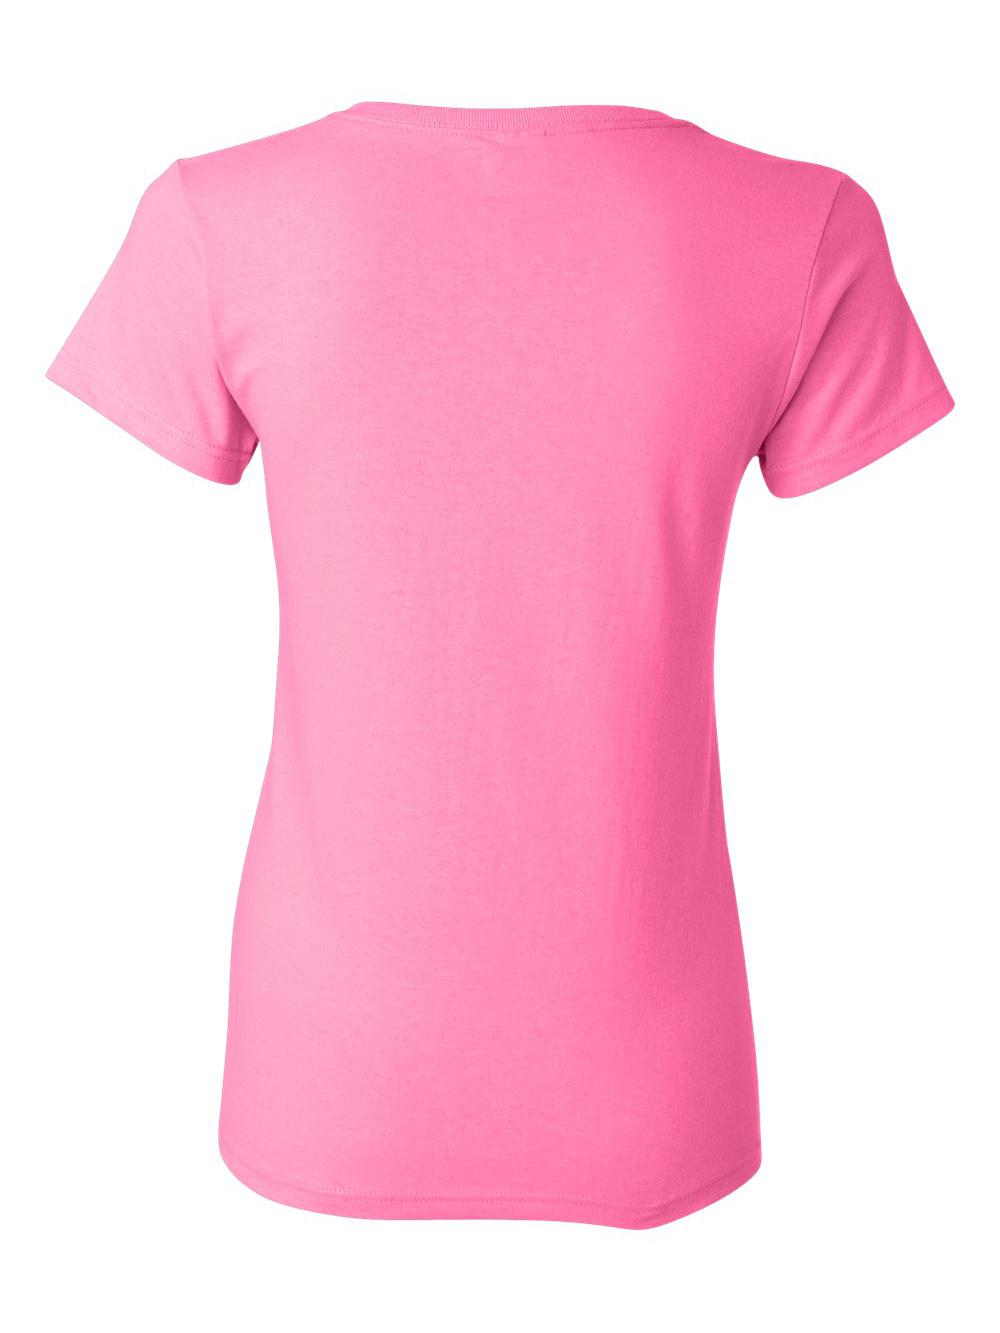 Gildan-Heavy-Cotton-Women-039-s-Short-Sleeve-T-Shirt-5000L thumbnail 13